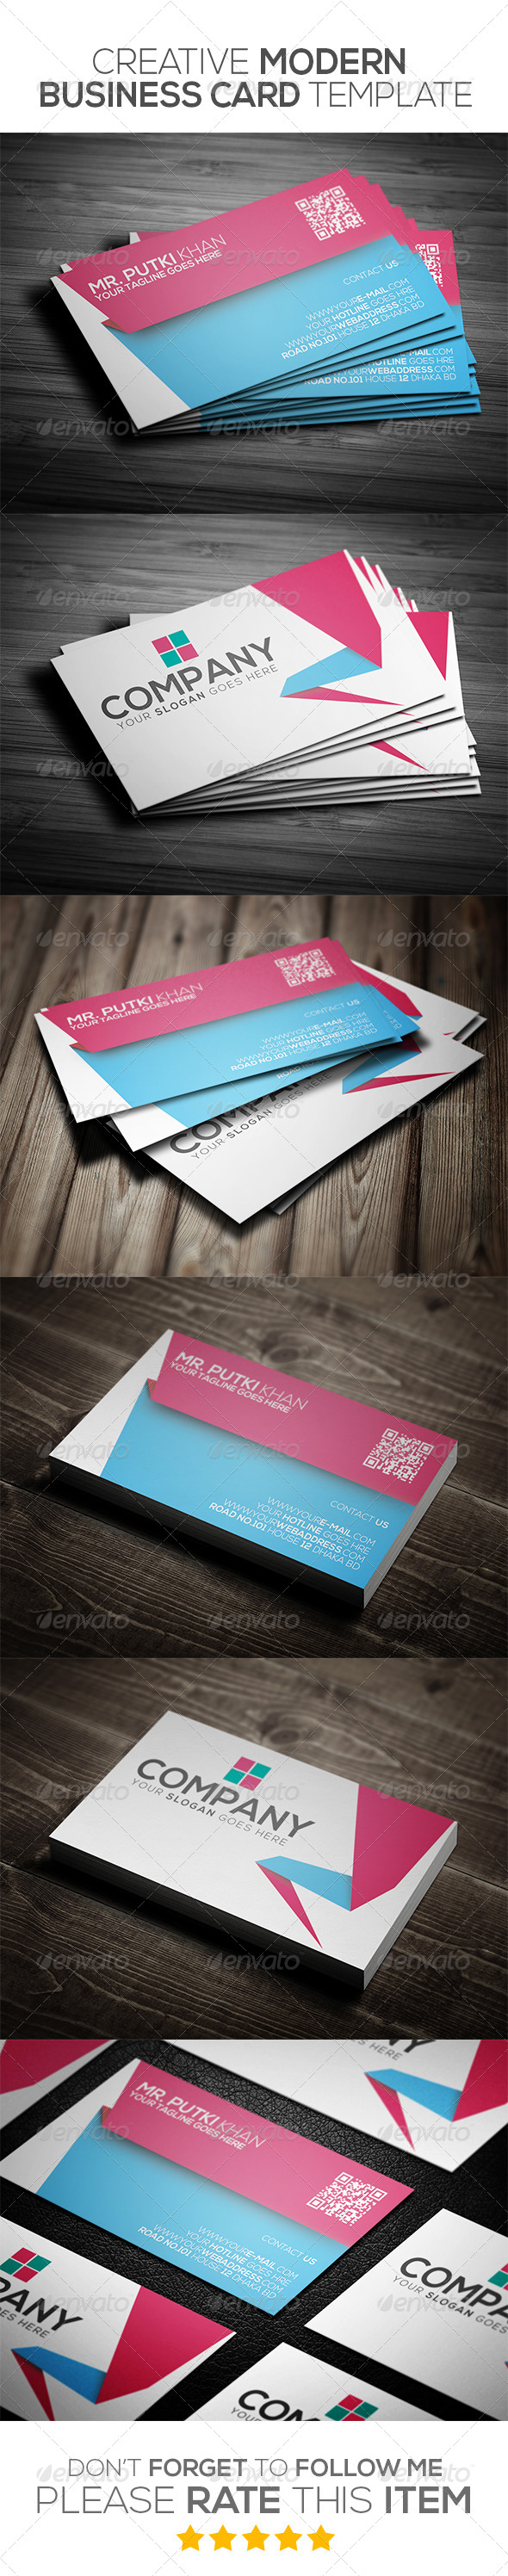 GraphicRiver Creative Modern Business Card Template 6973580